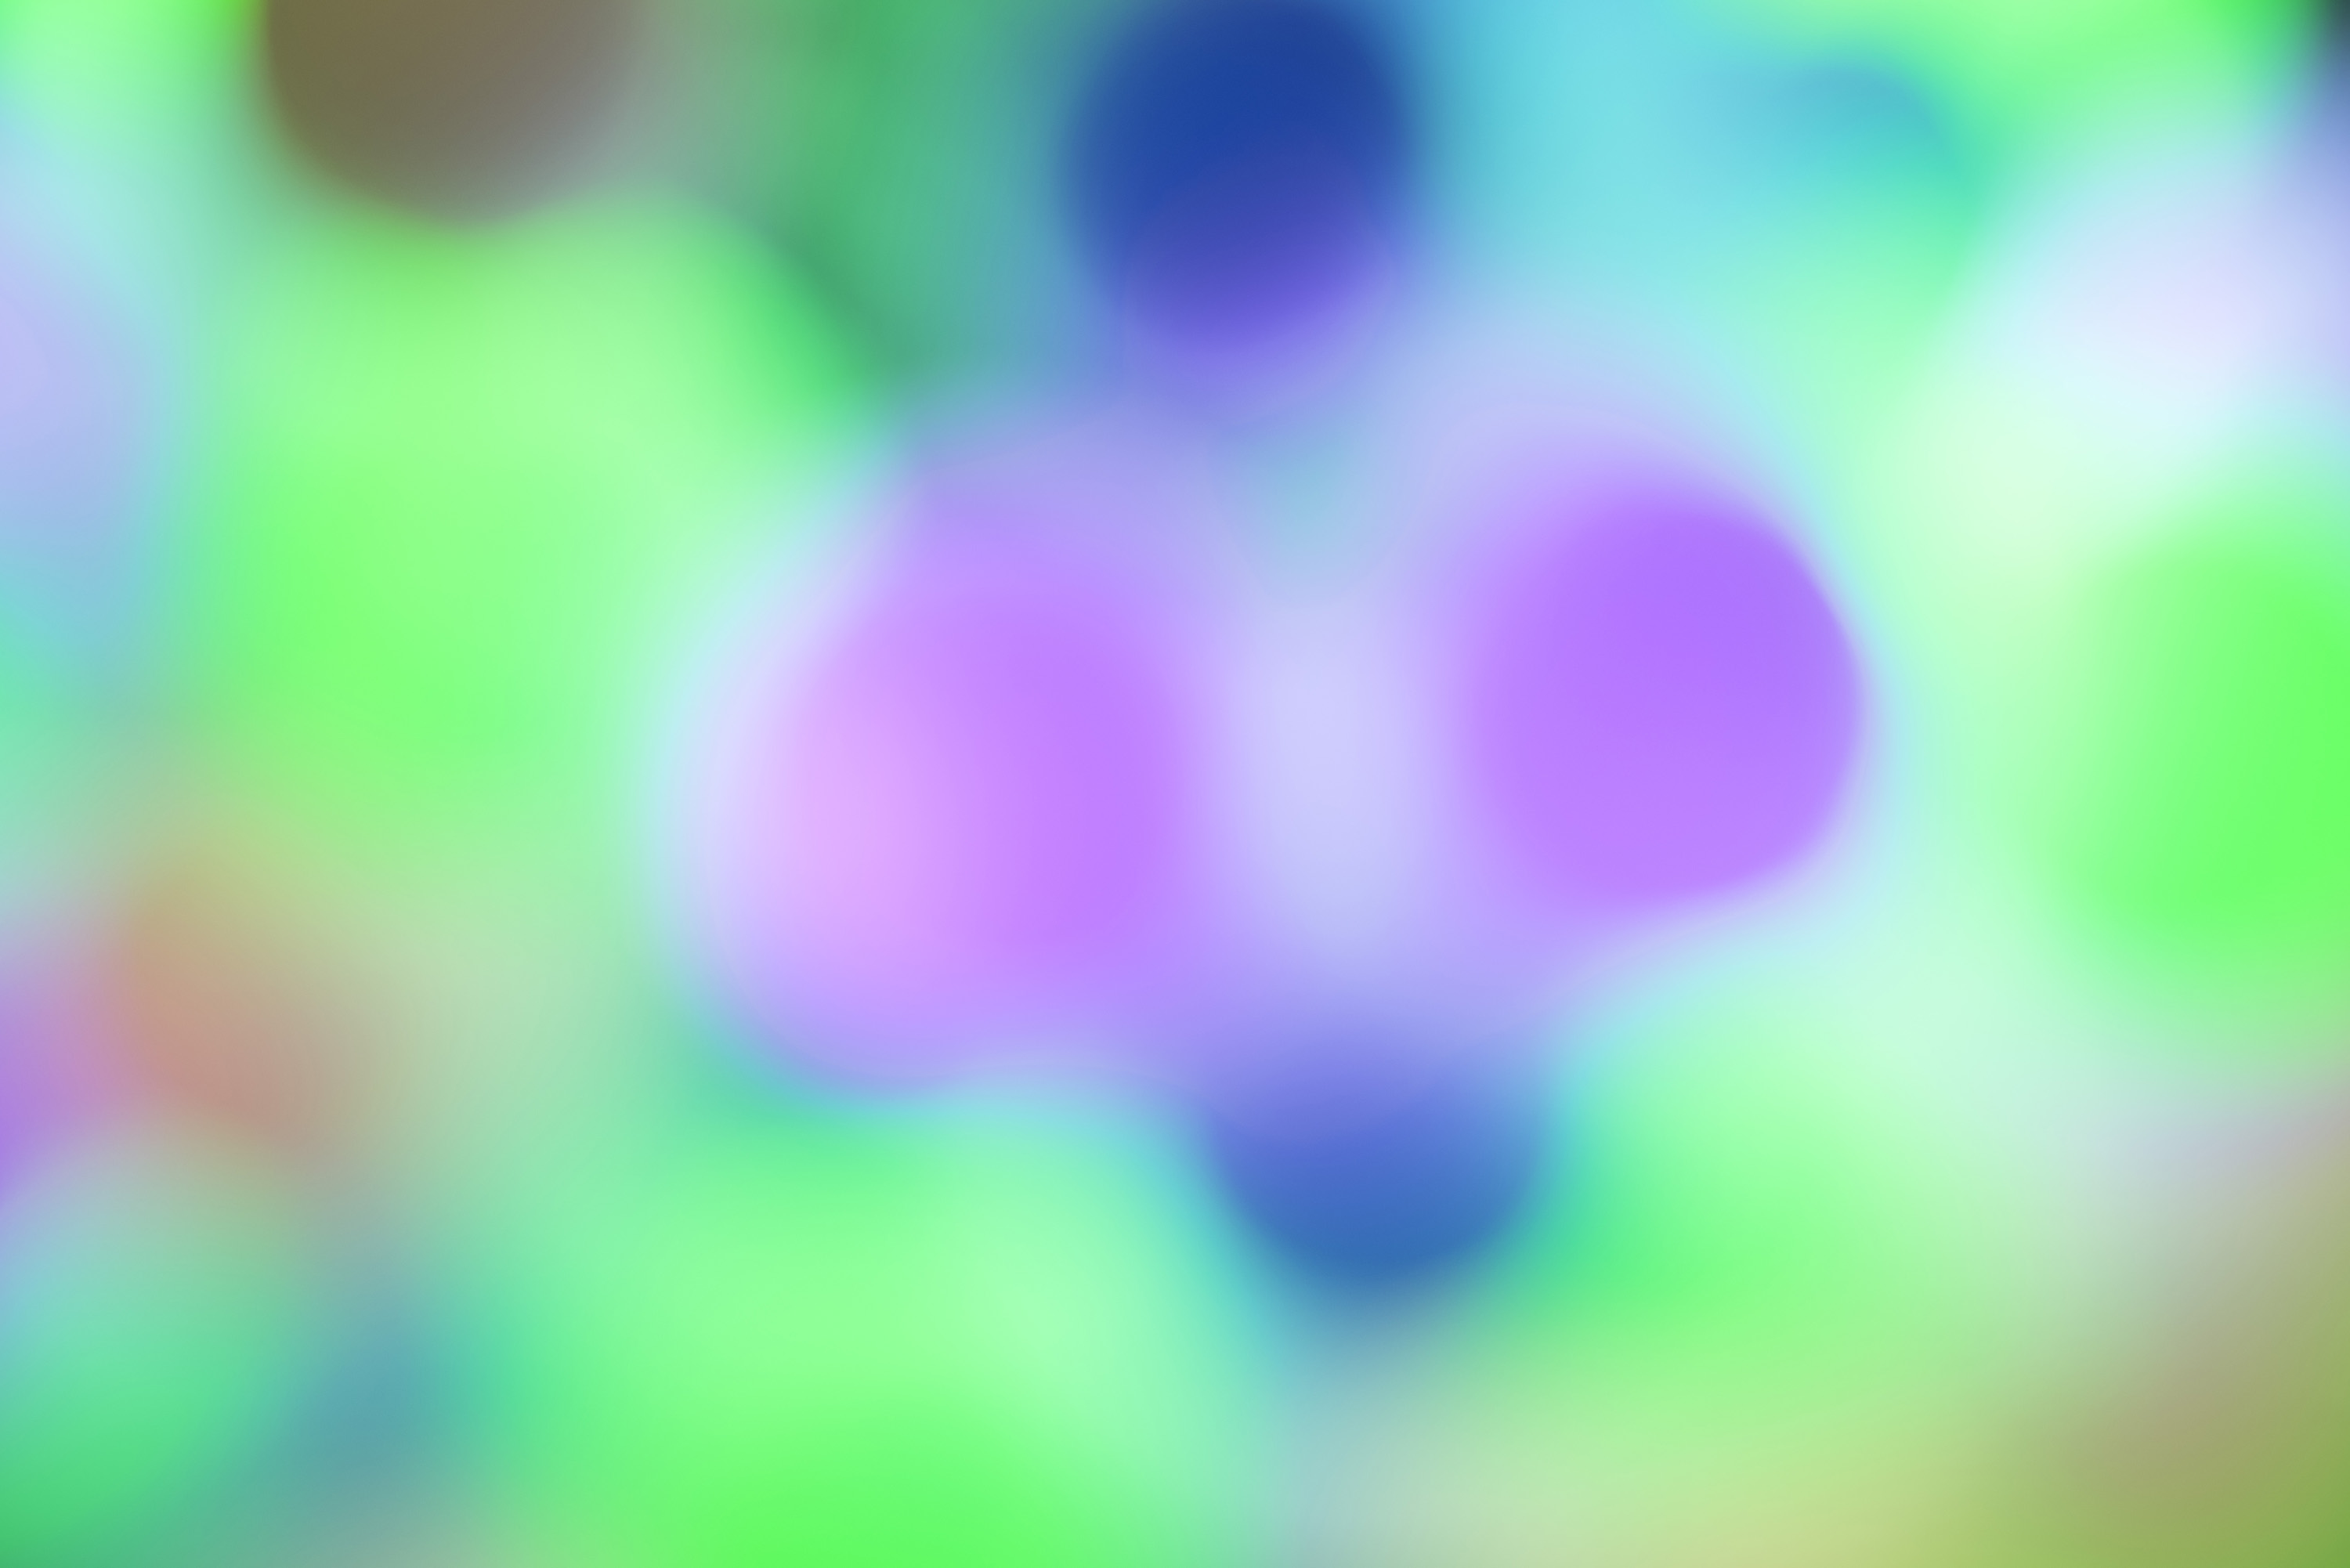 Colorful background with a soft circular bokeh in green , blue and purple of round festive lights for a party or Christmas celebration